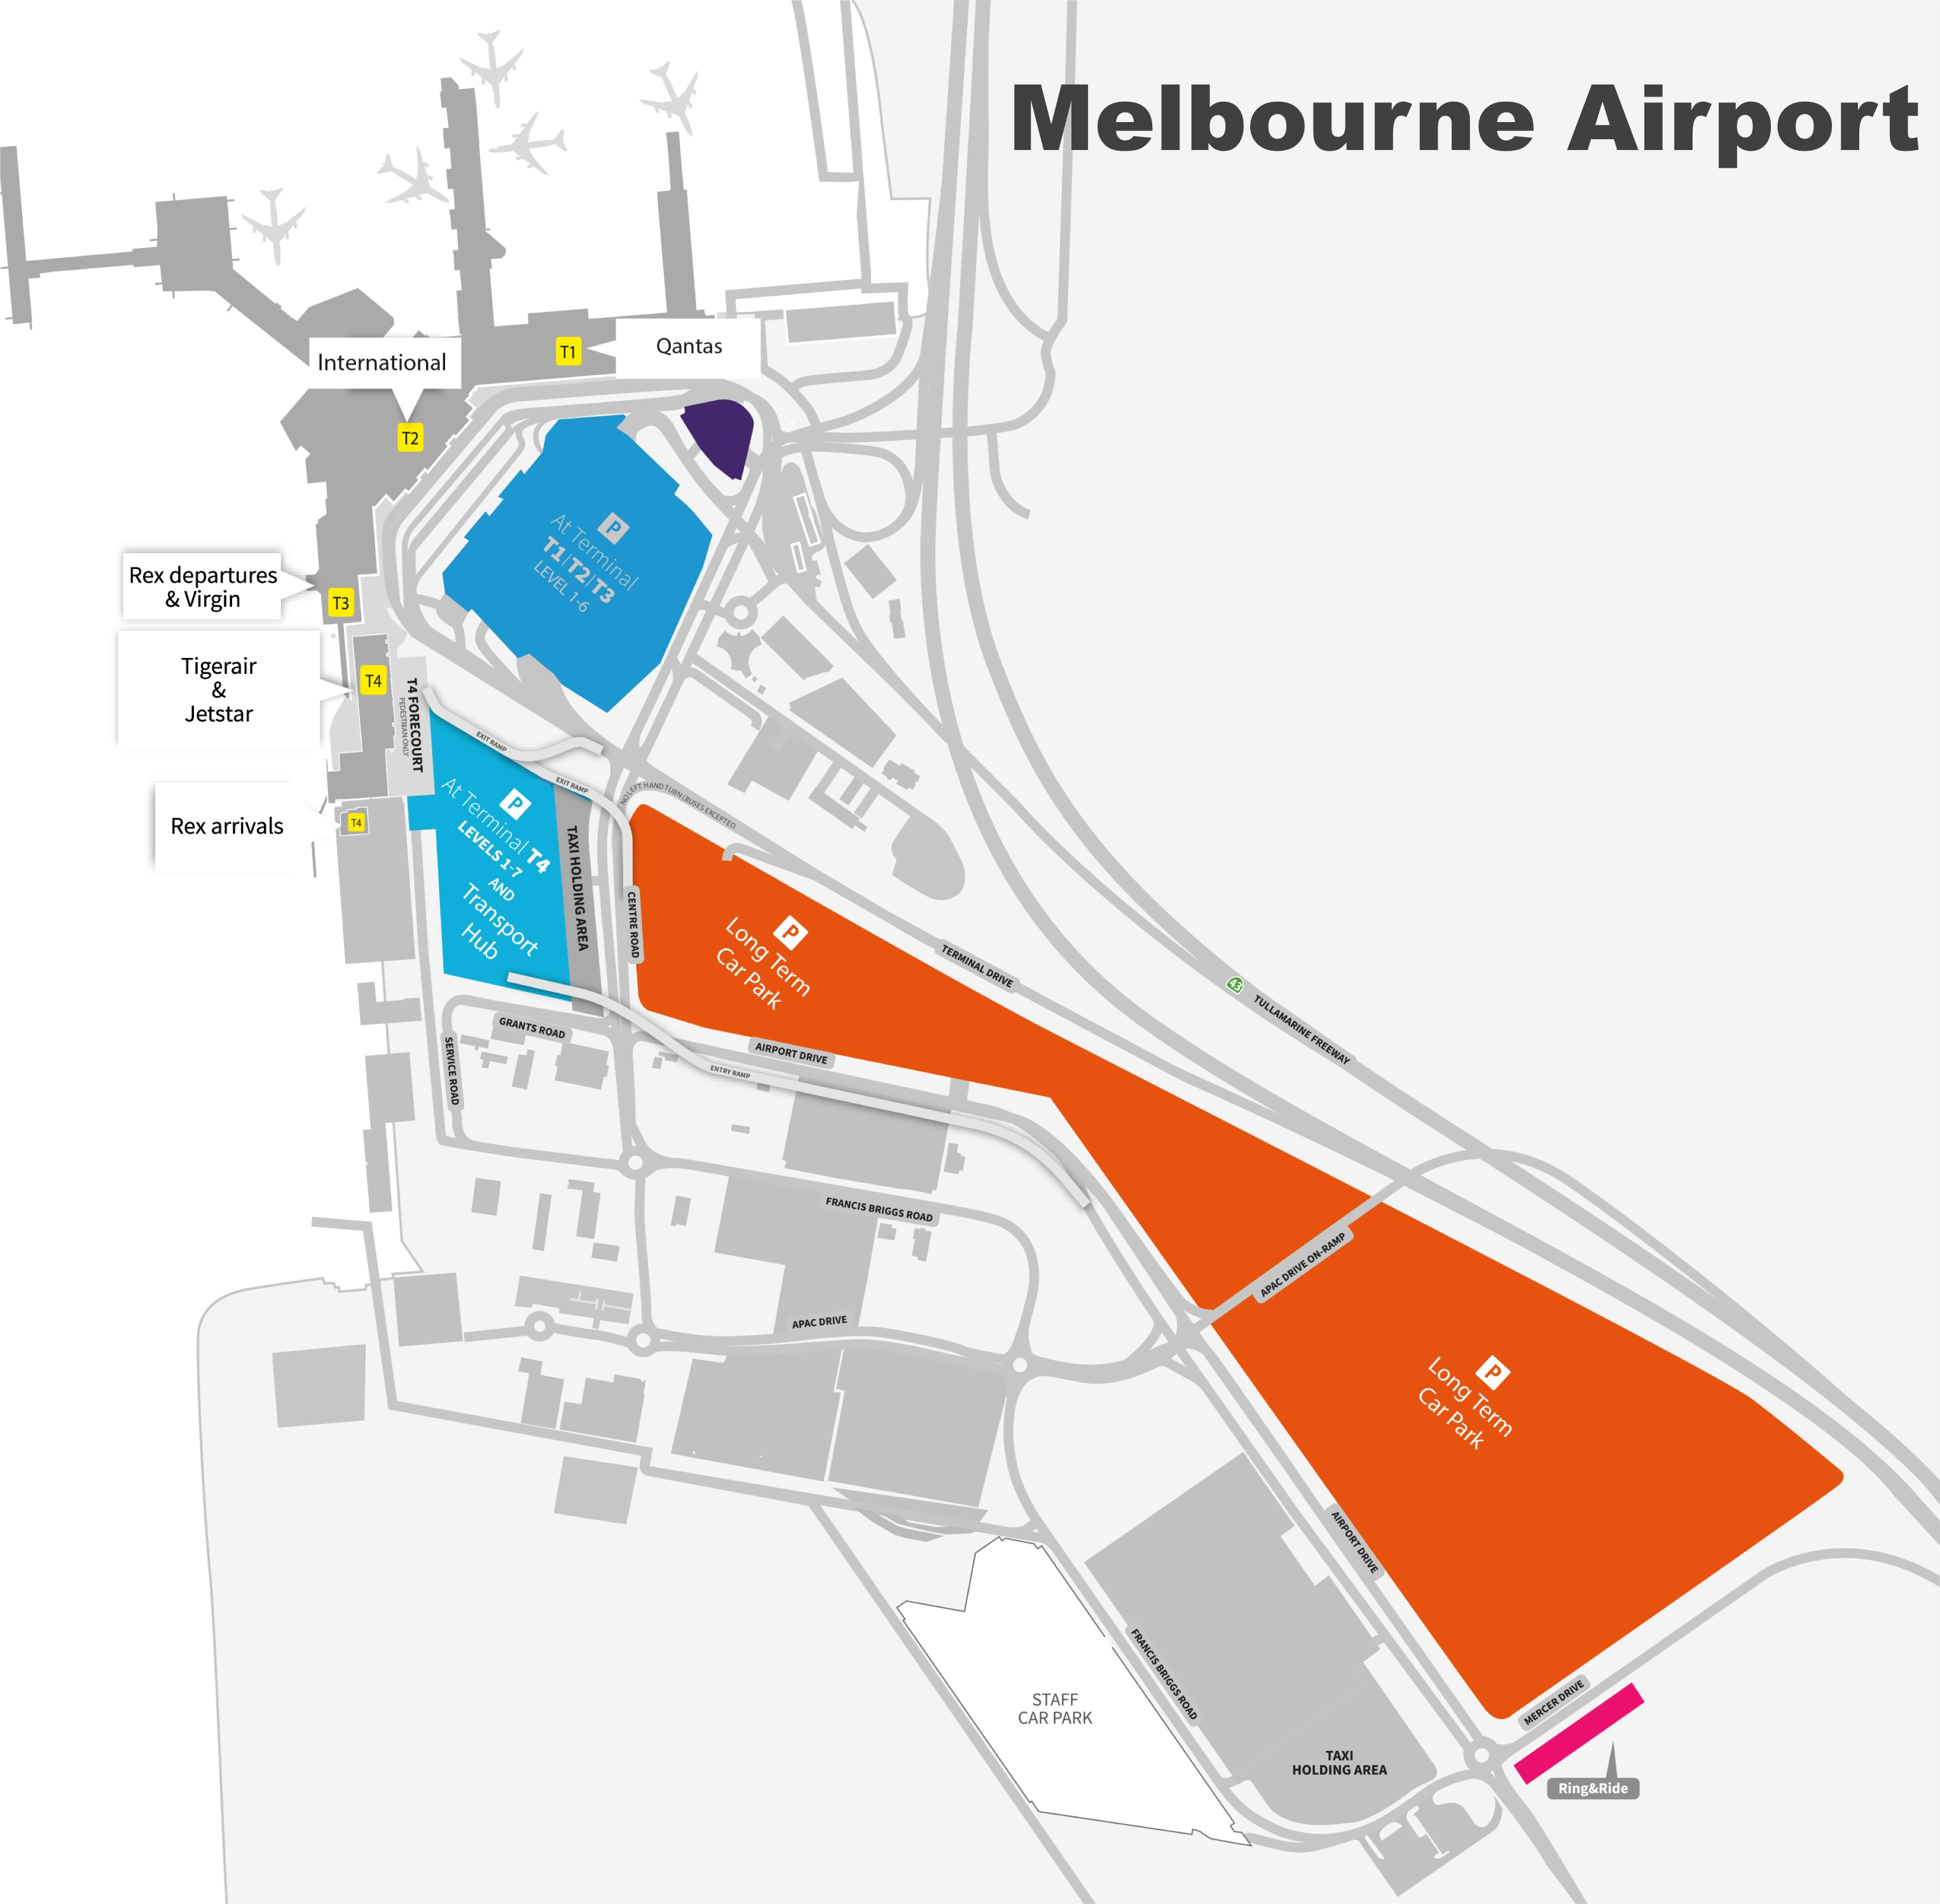 Melbourne Airport Map Melbourne airport map Melbourne Airport Map